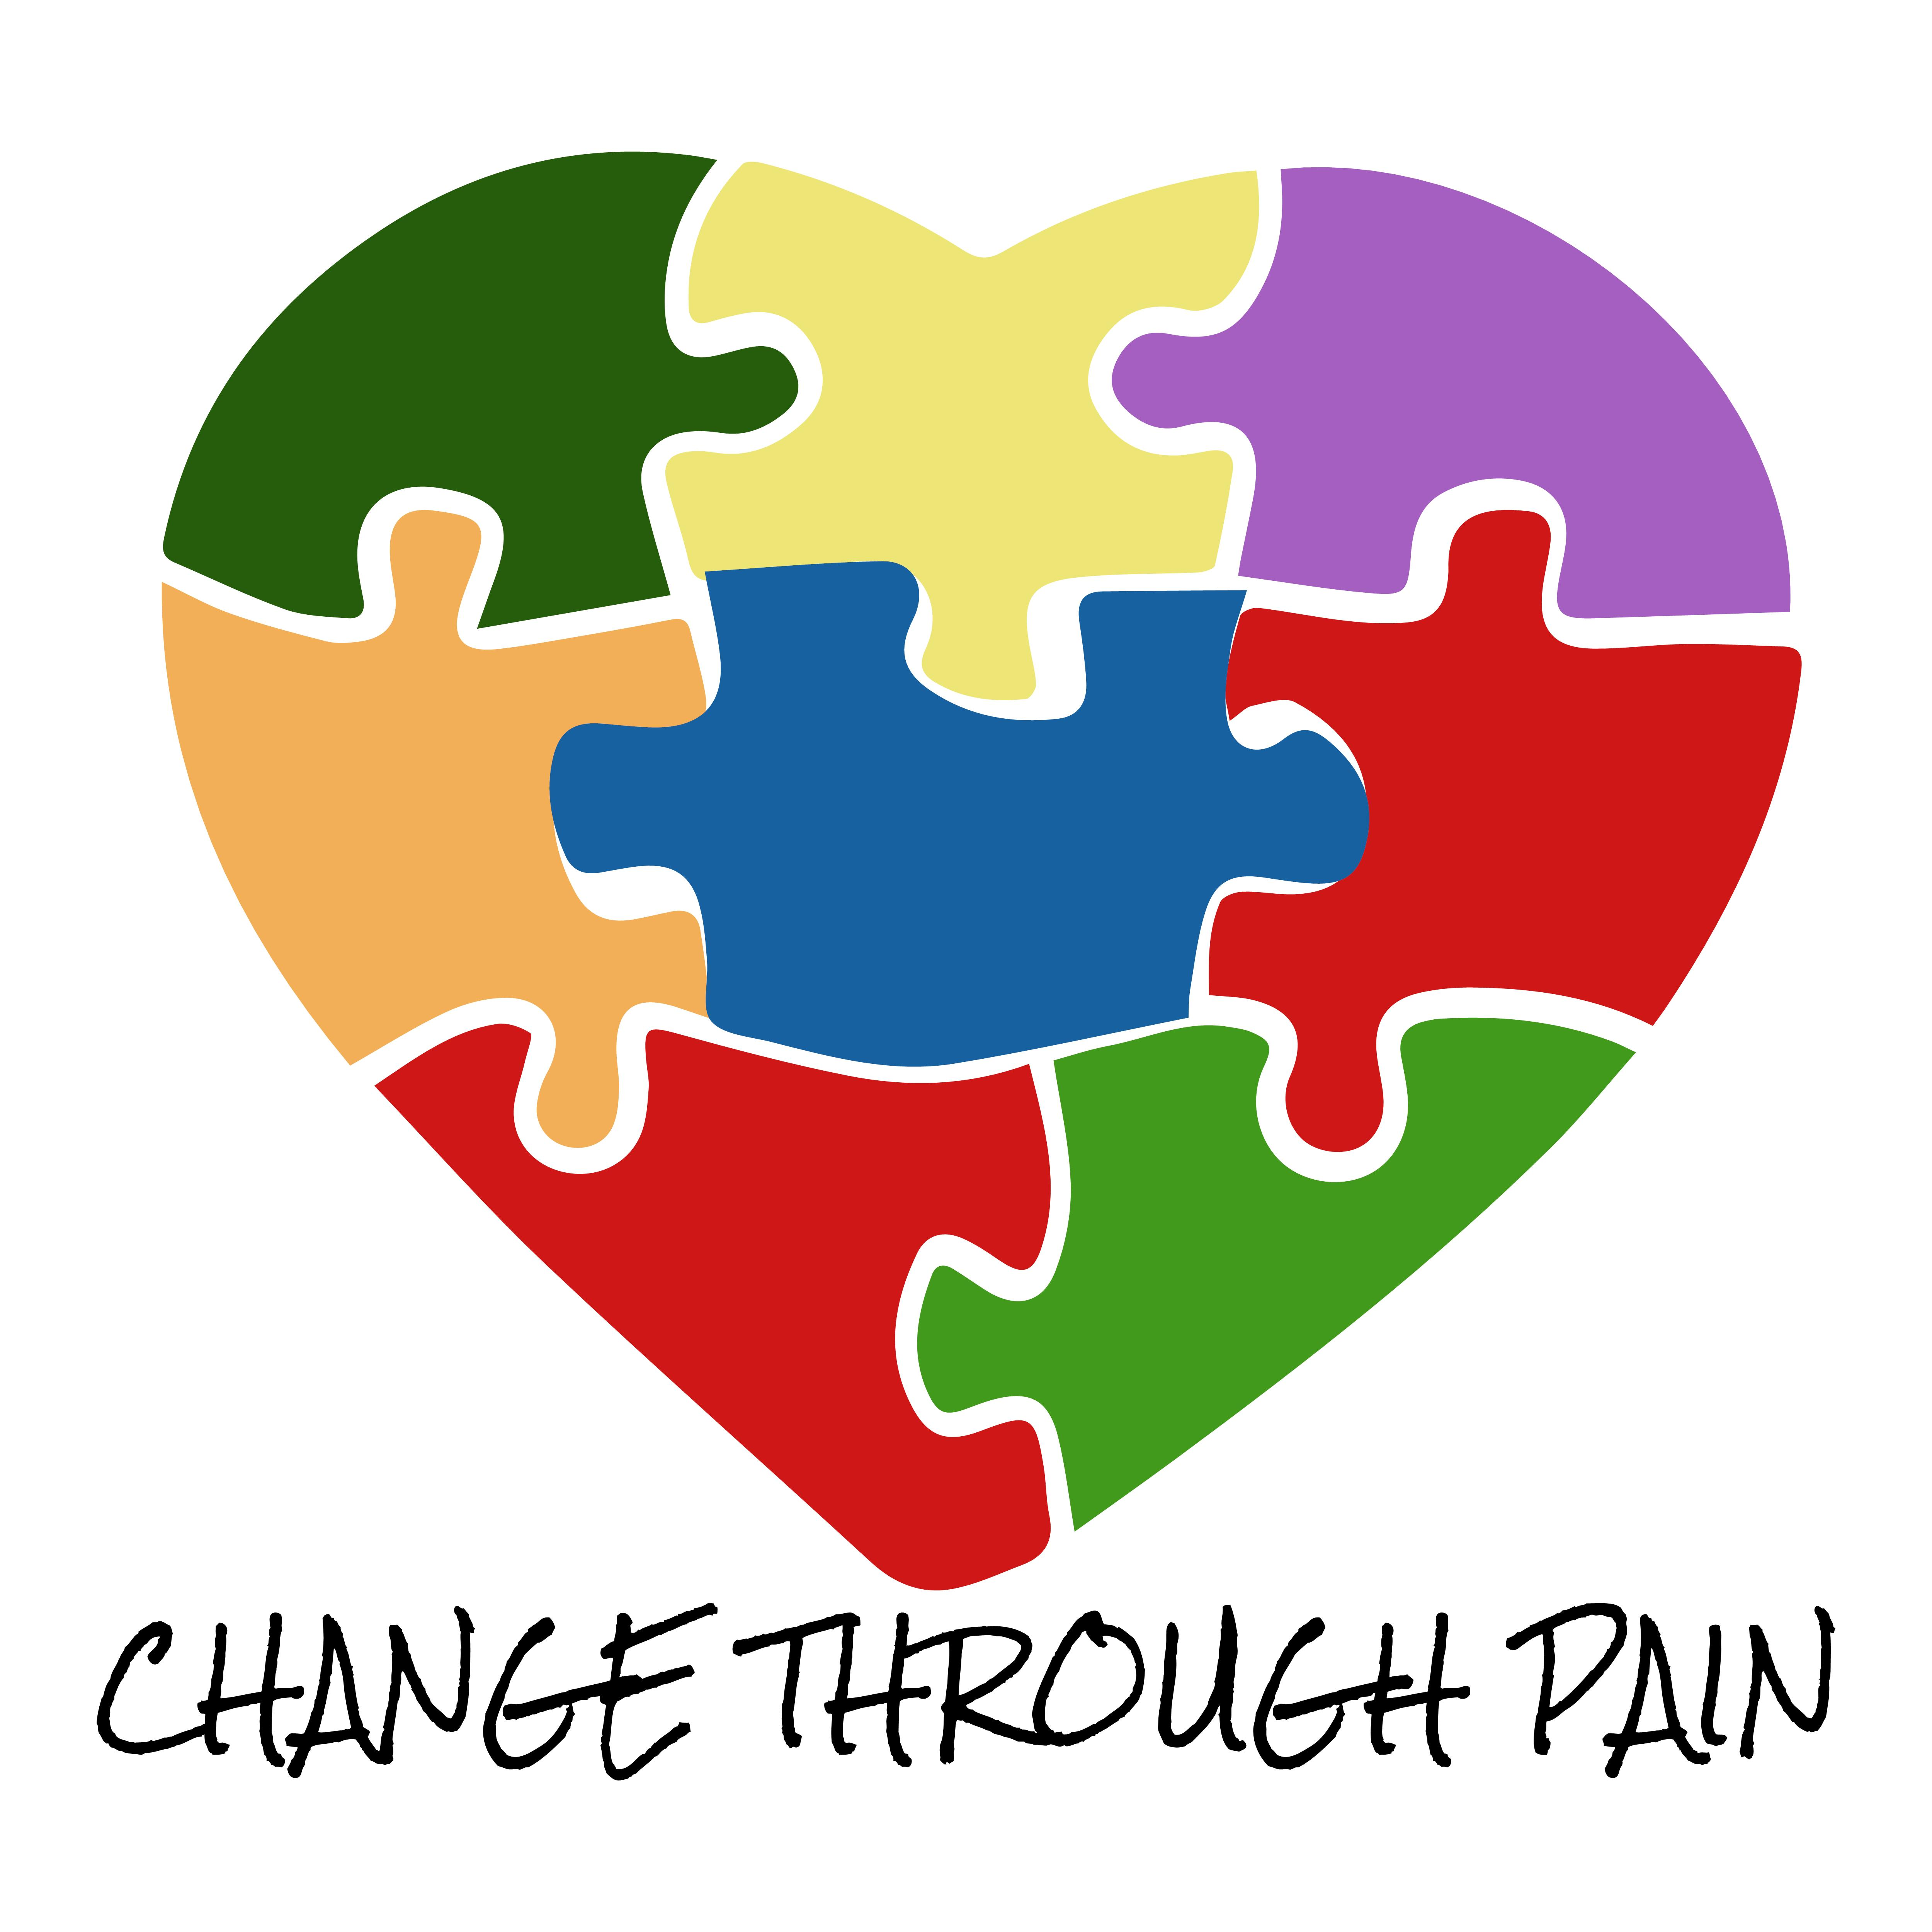 Change Through Pain